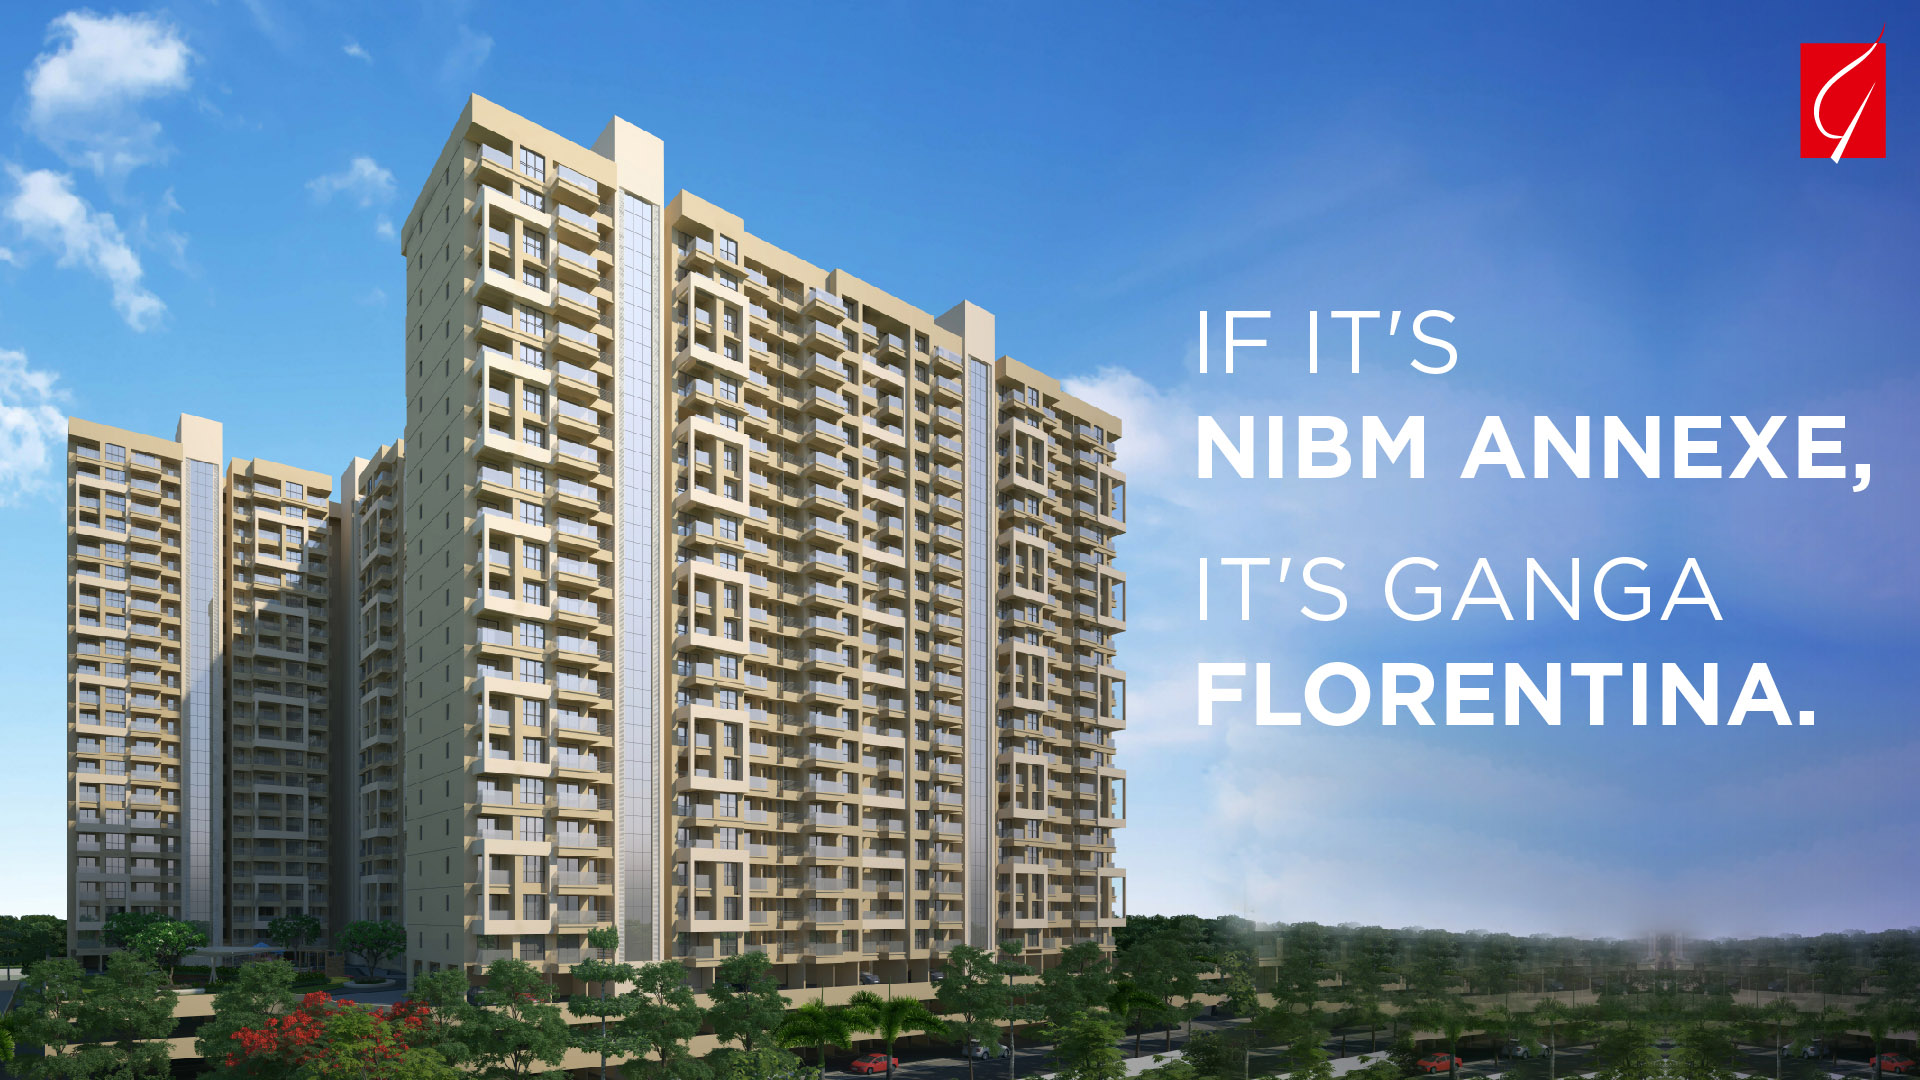 Ganga Florentina – Blending luxury, comfort and economic living at NIBM